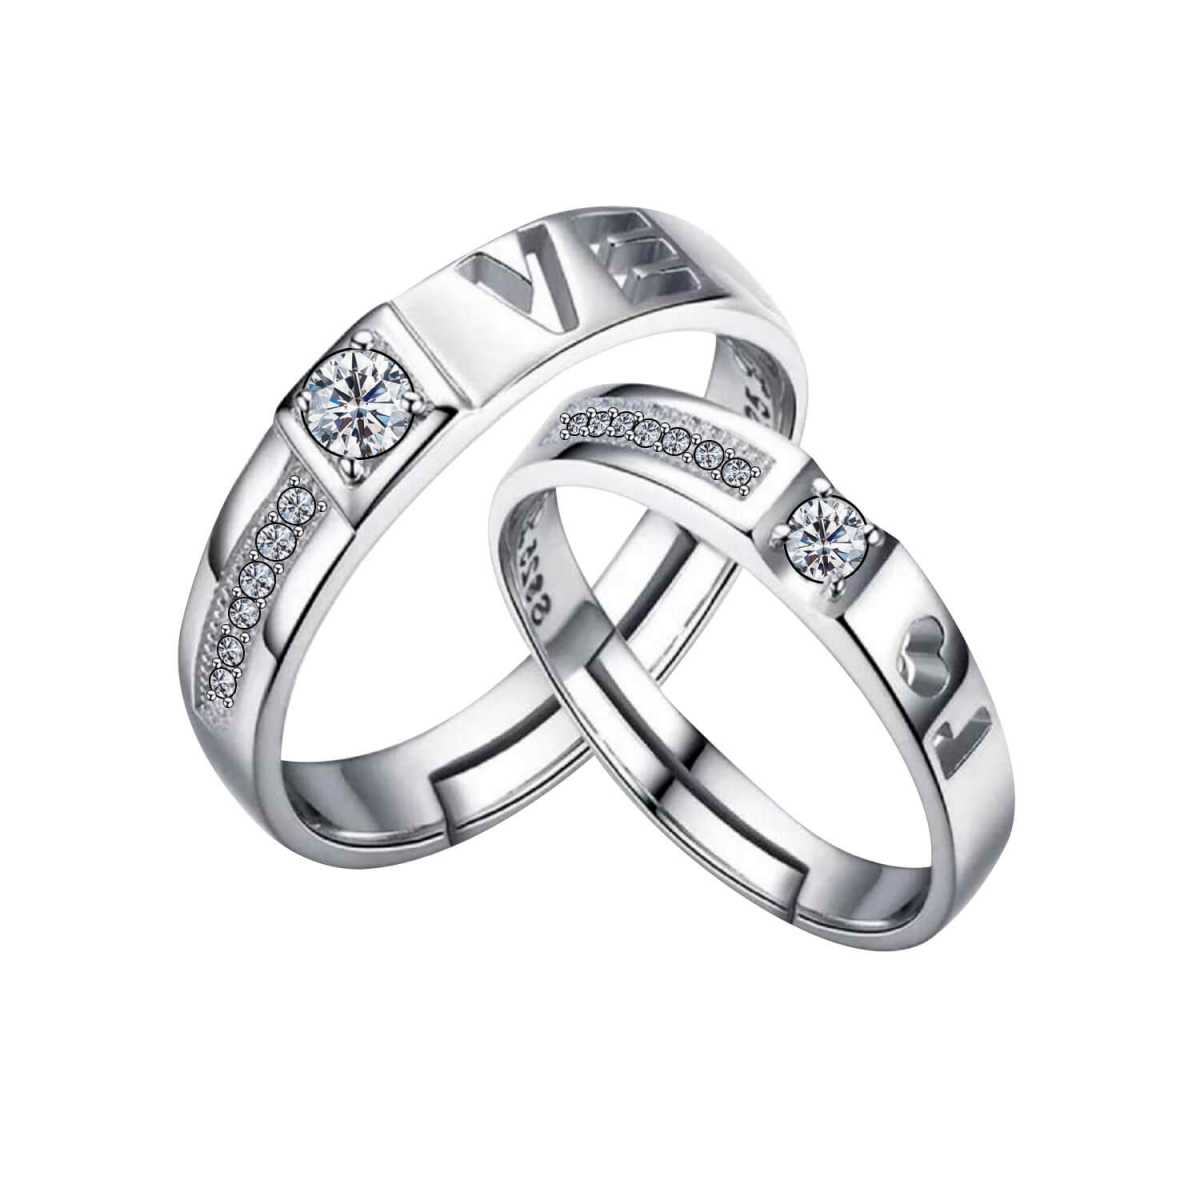 SILVERSHINE,silver plated half side decorated crystal diamond with adjustable superior designed couple ring for men and women.